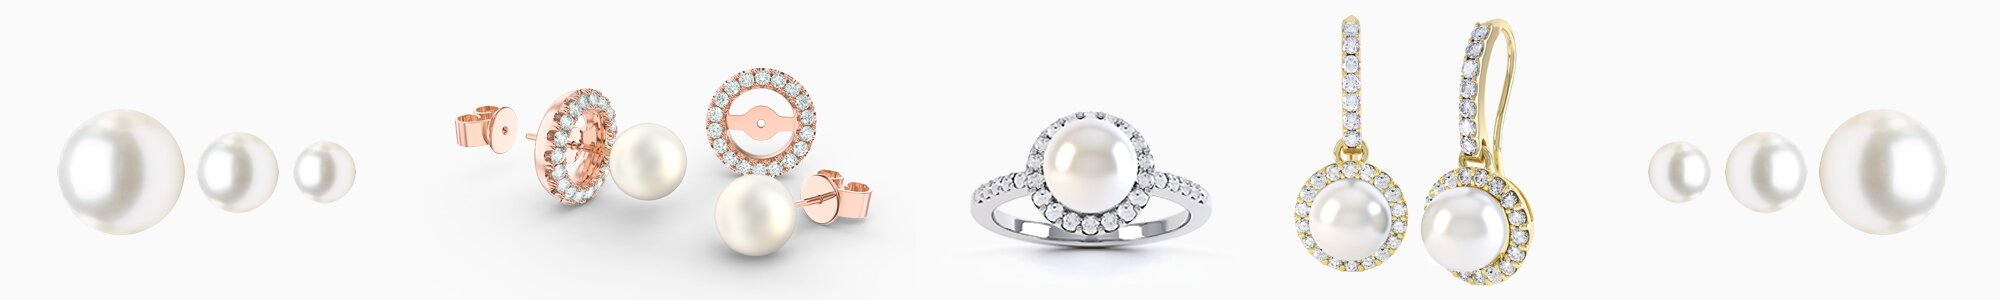 Pearl Jewellery - Freshwater Pearl Necklaces, Earrings, Studs, Drops, Pendants, Engagement Rings and Bracelets